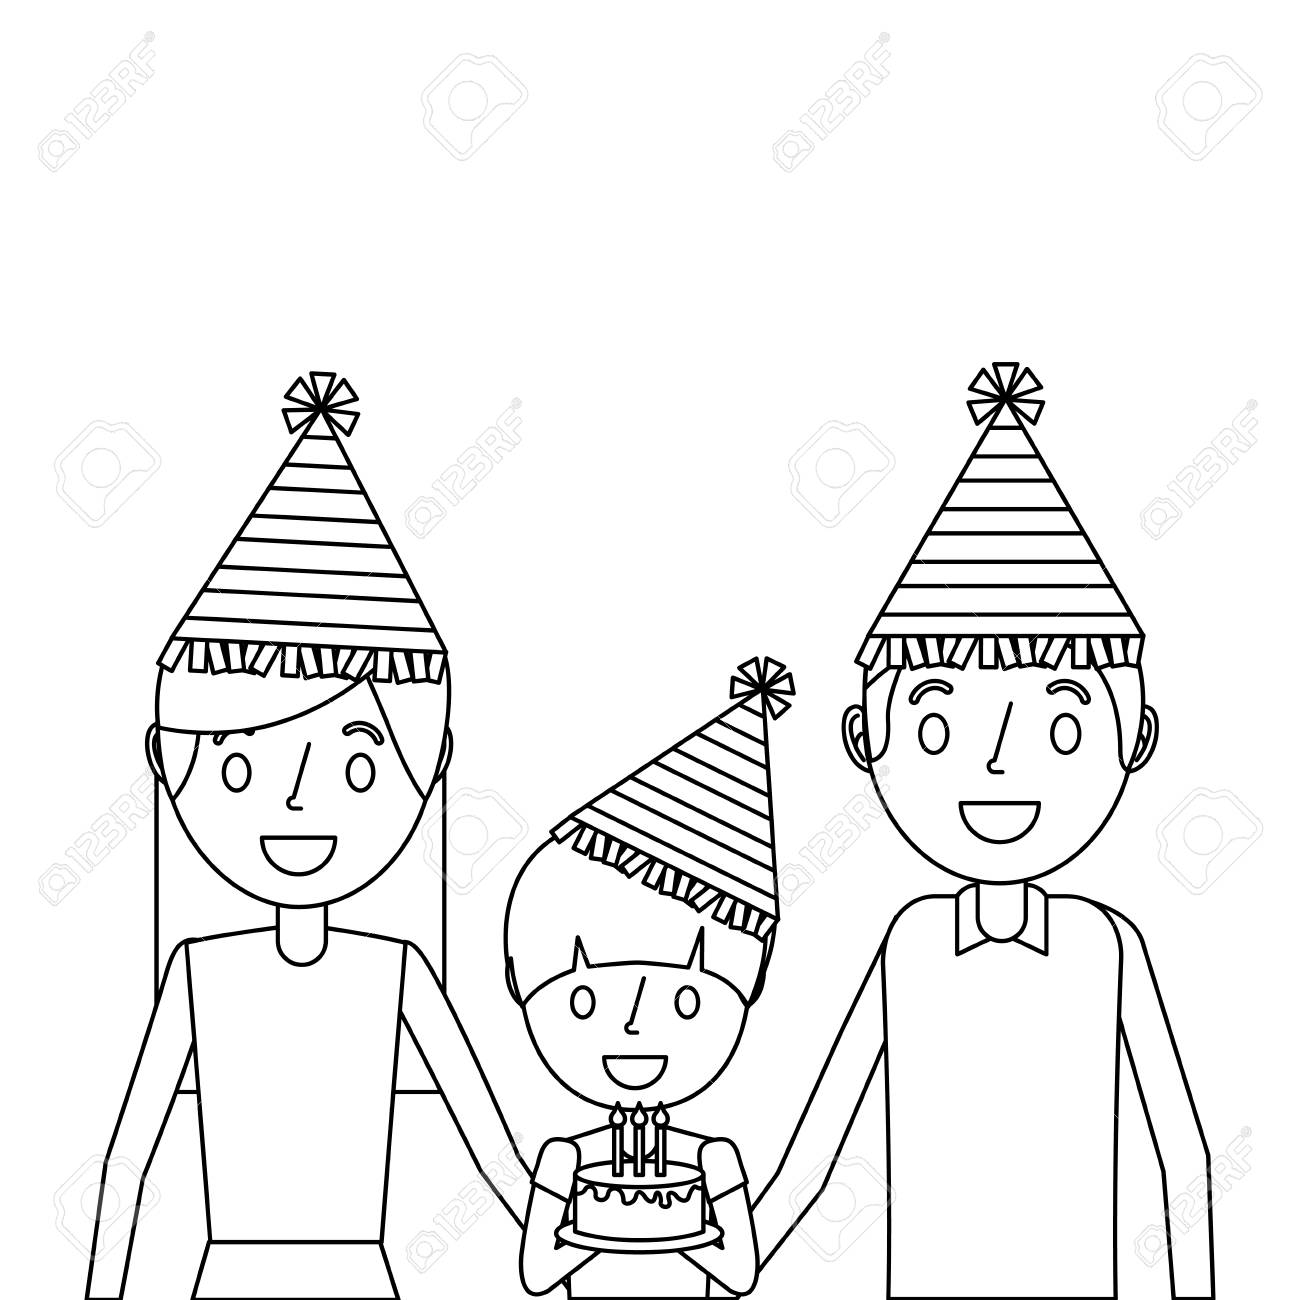 Family Parents And Her Kid With Party Hat Holding Birthday Cake Royalty Free Cliparts Vectors And Stock Illustration Image 91219788